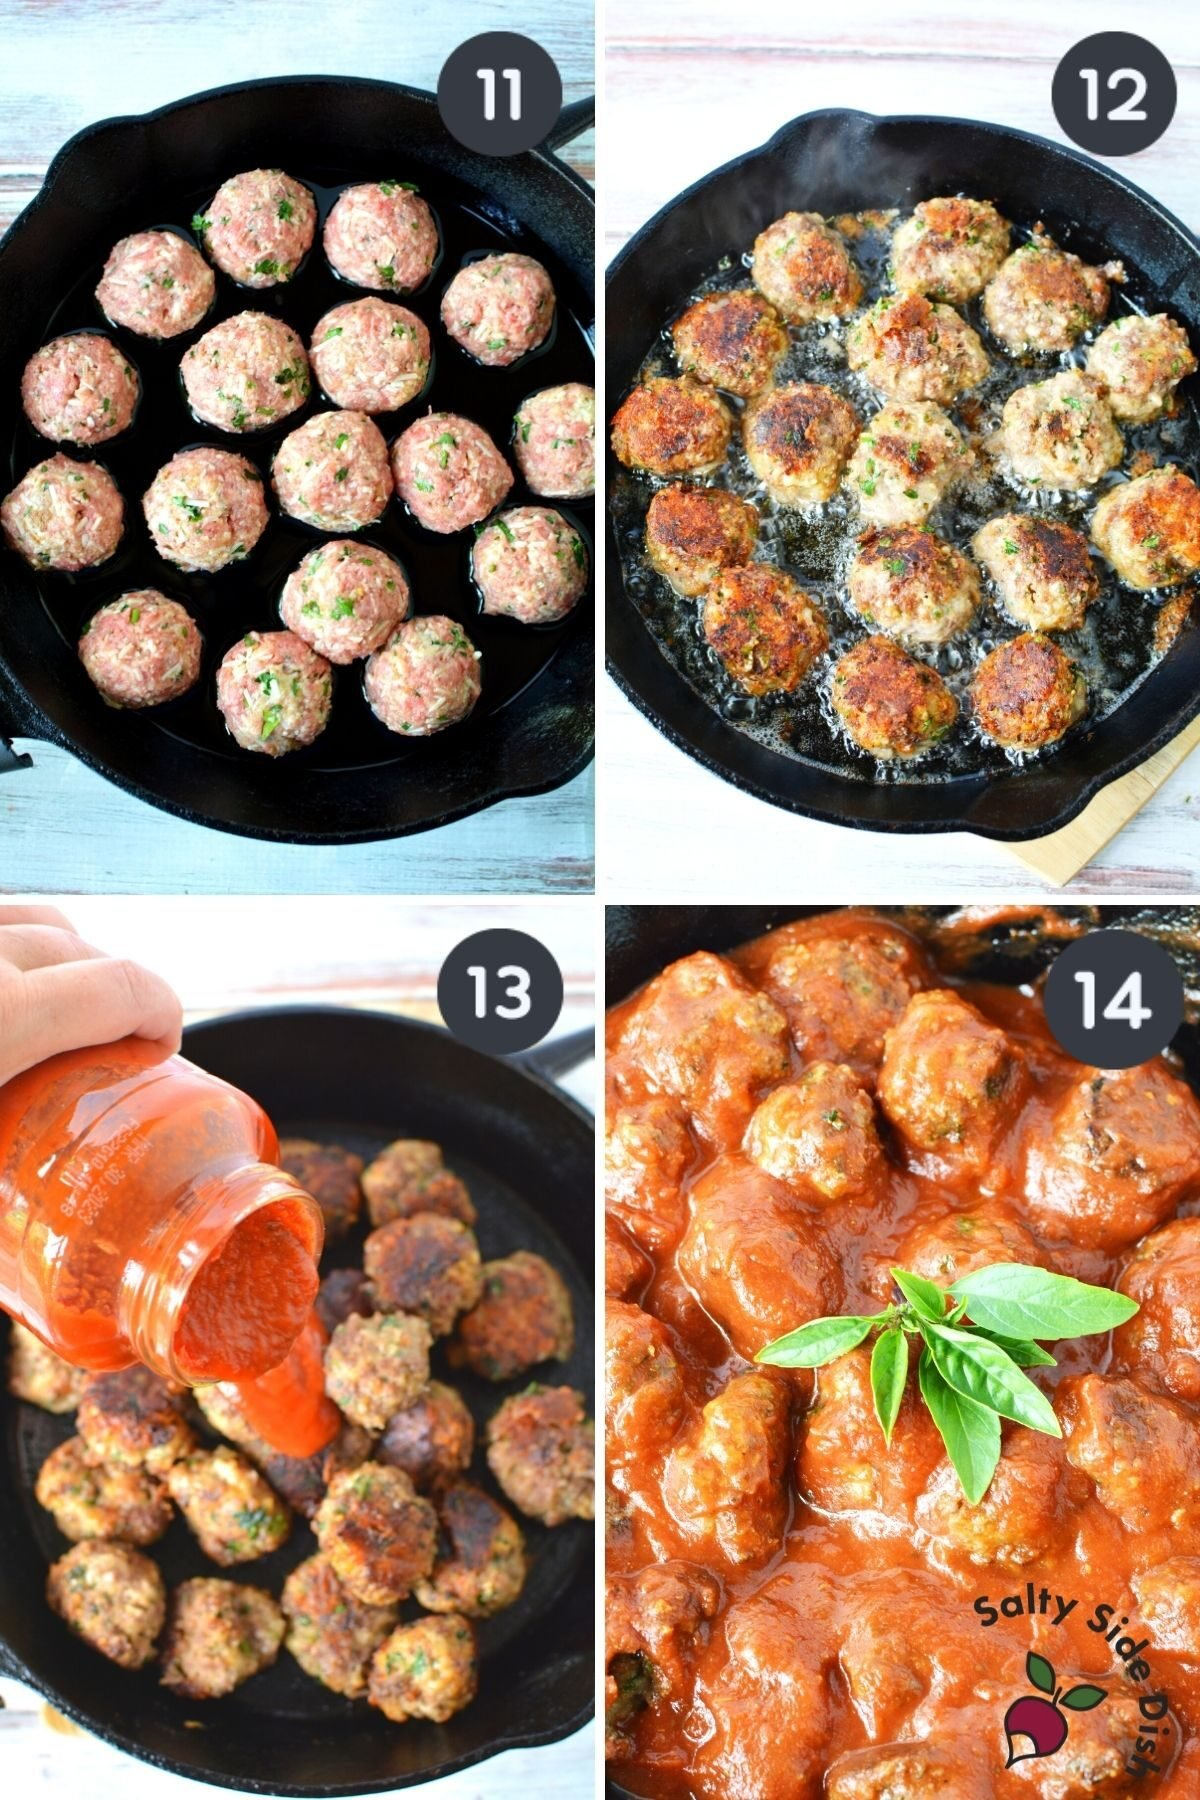 4 images showing raw to cooked meatballs and then simmered in sauce.